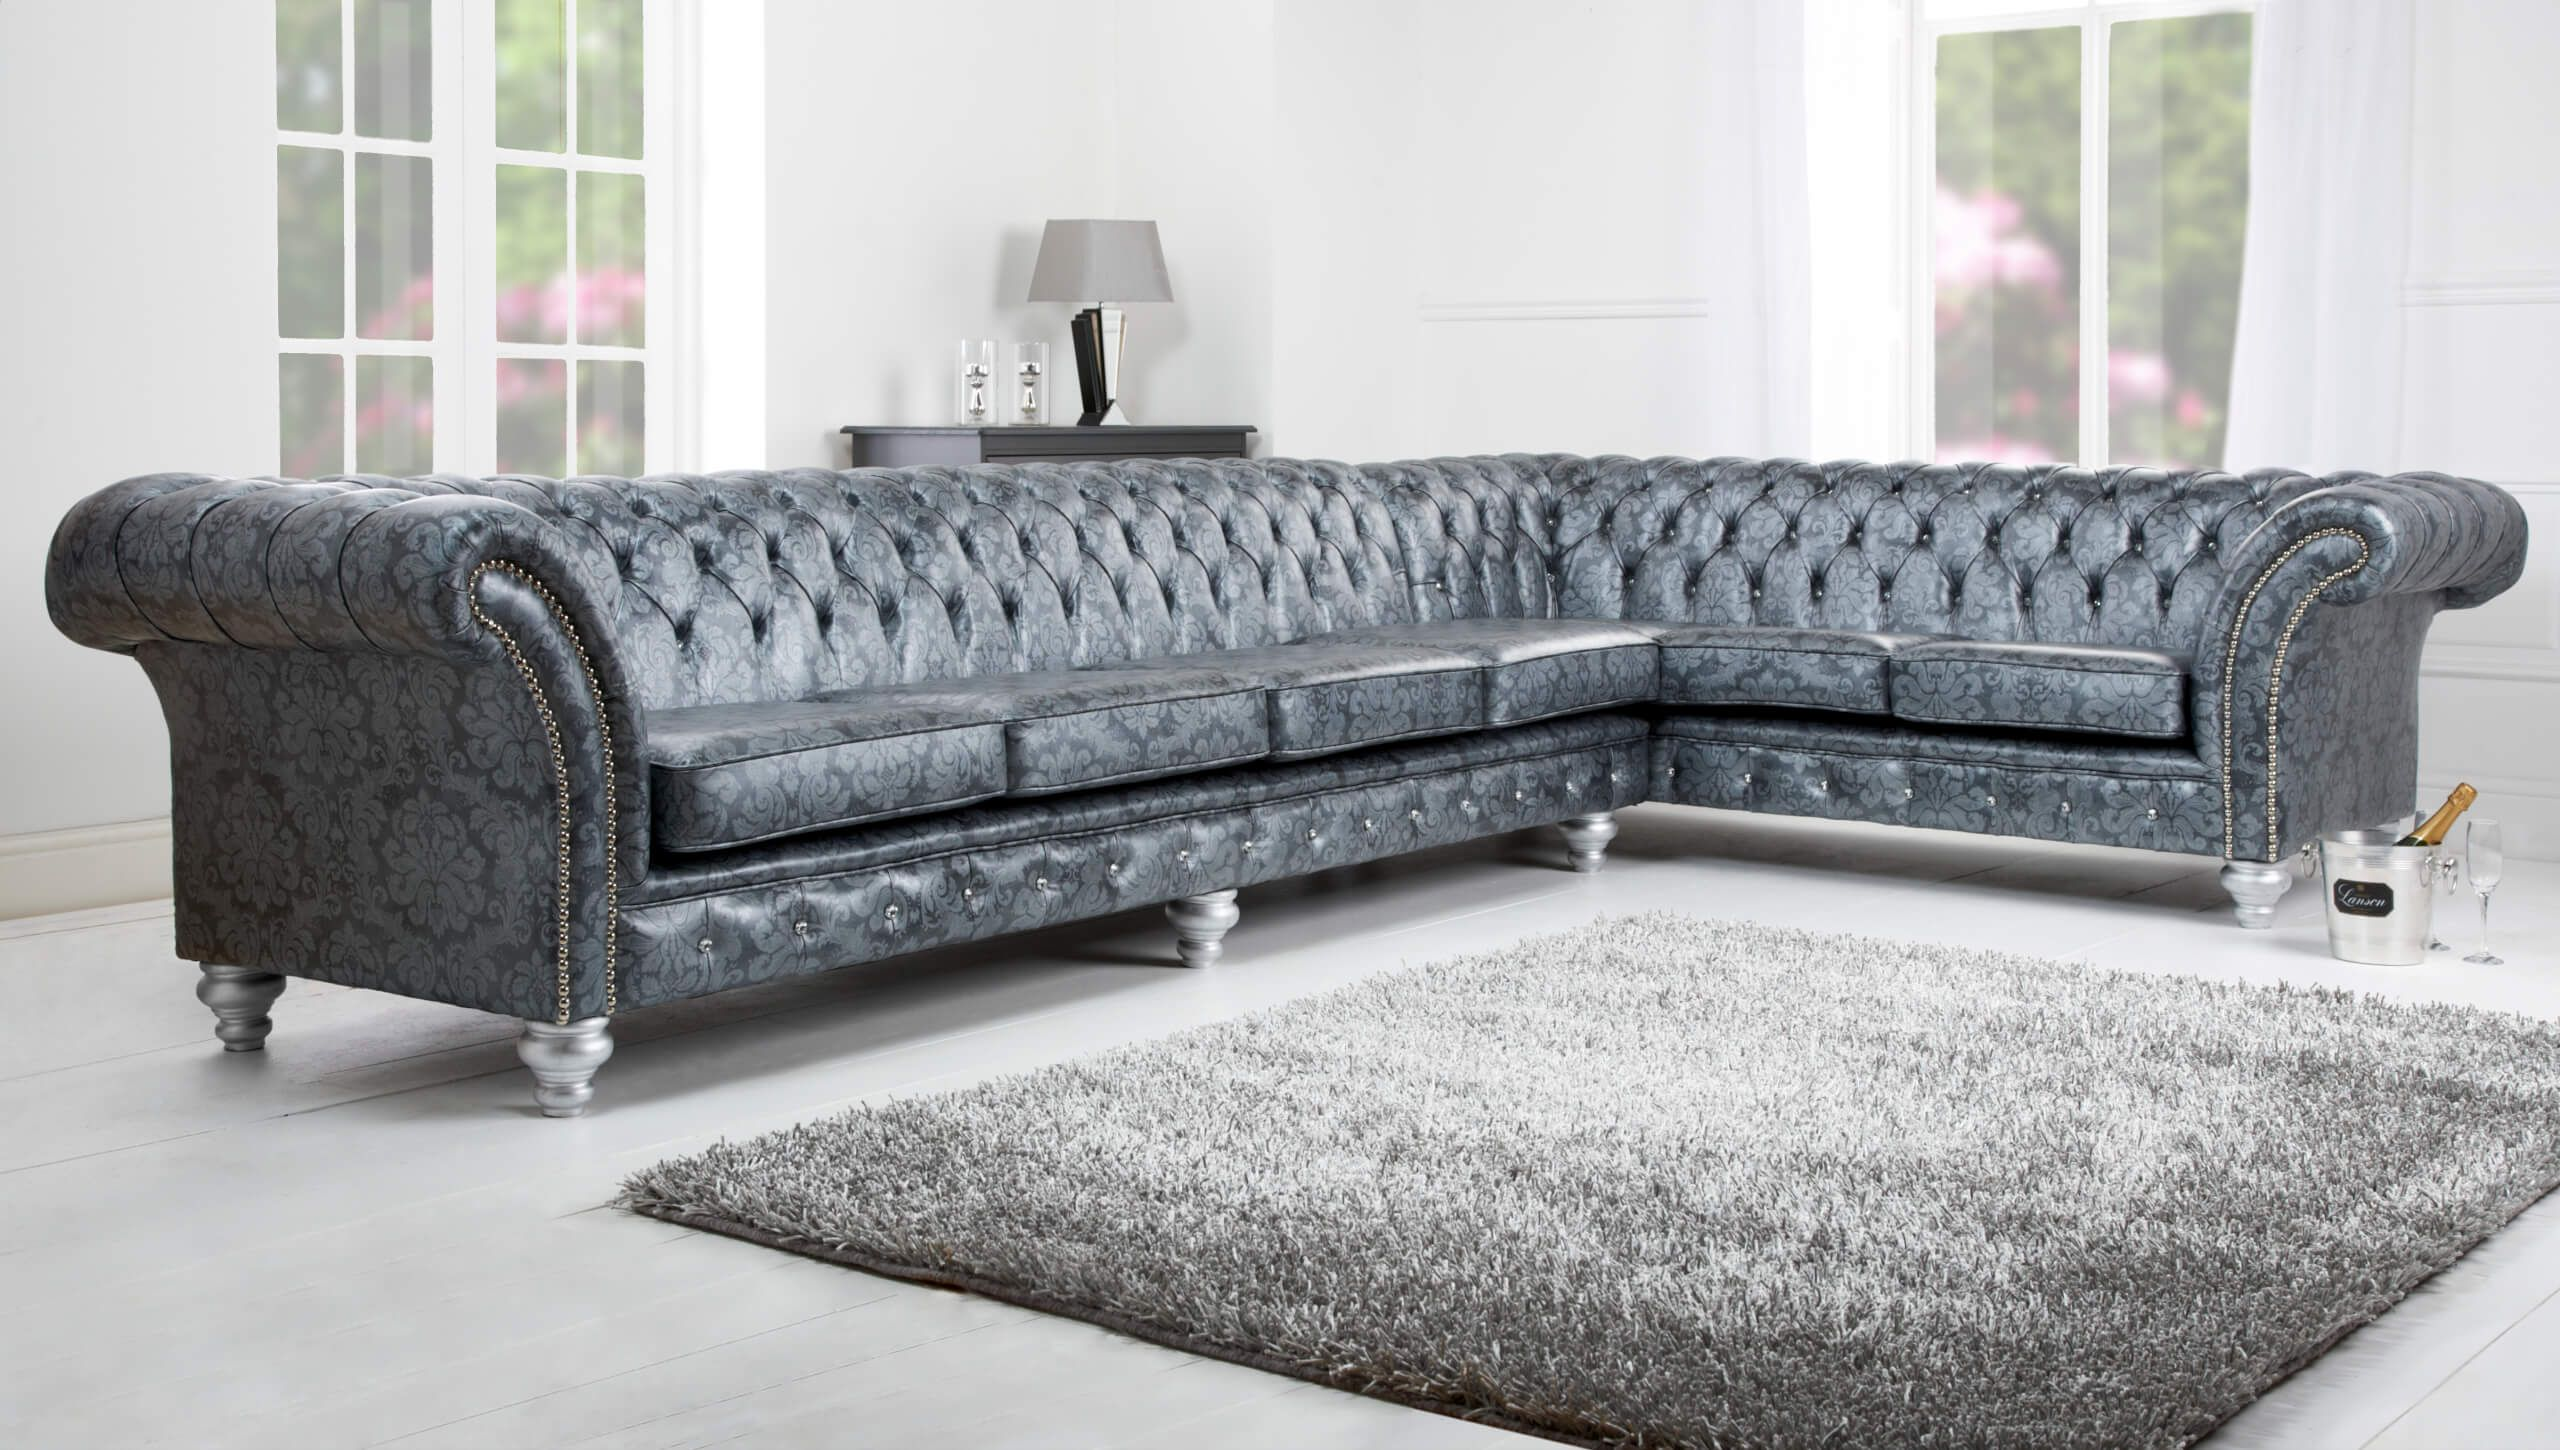 What Is A Chesterfield Nonagon Style Chesterfield Corner Sofa Leather Sofa Best Leather Sofa